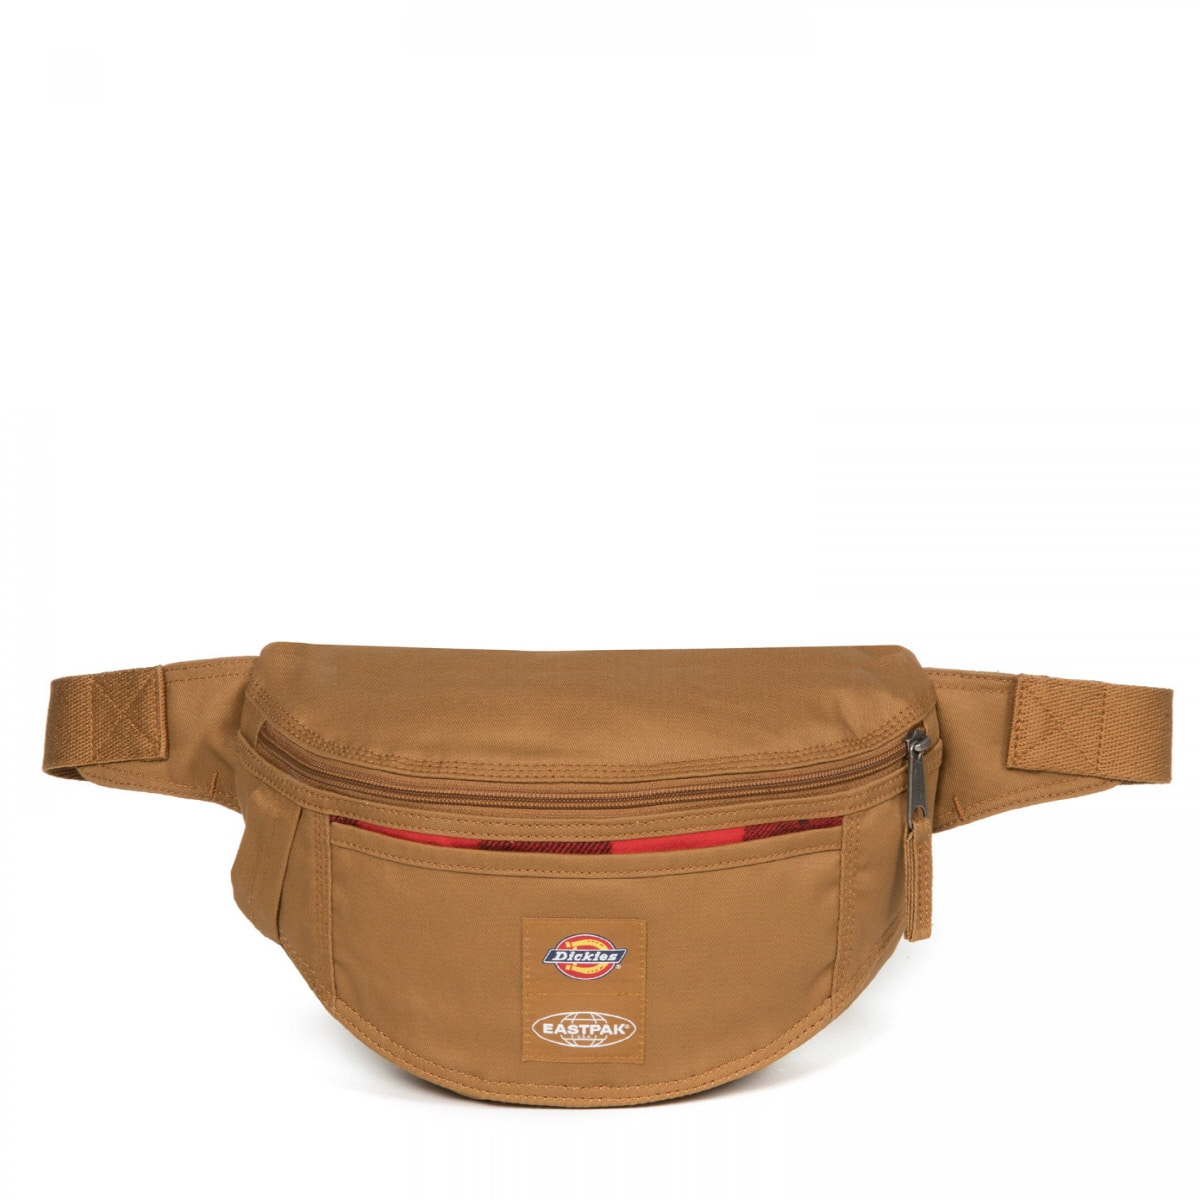 [EASTPAK] DICKIES X EASTPAK 웨이스트백 번델 EJCBW07 84Y